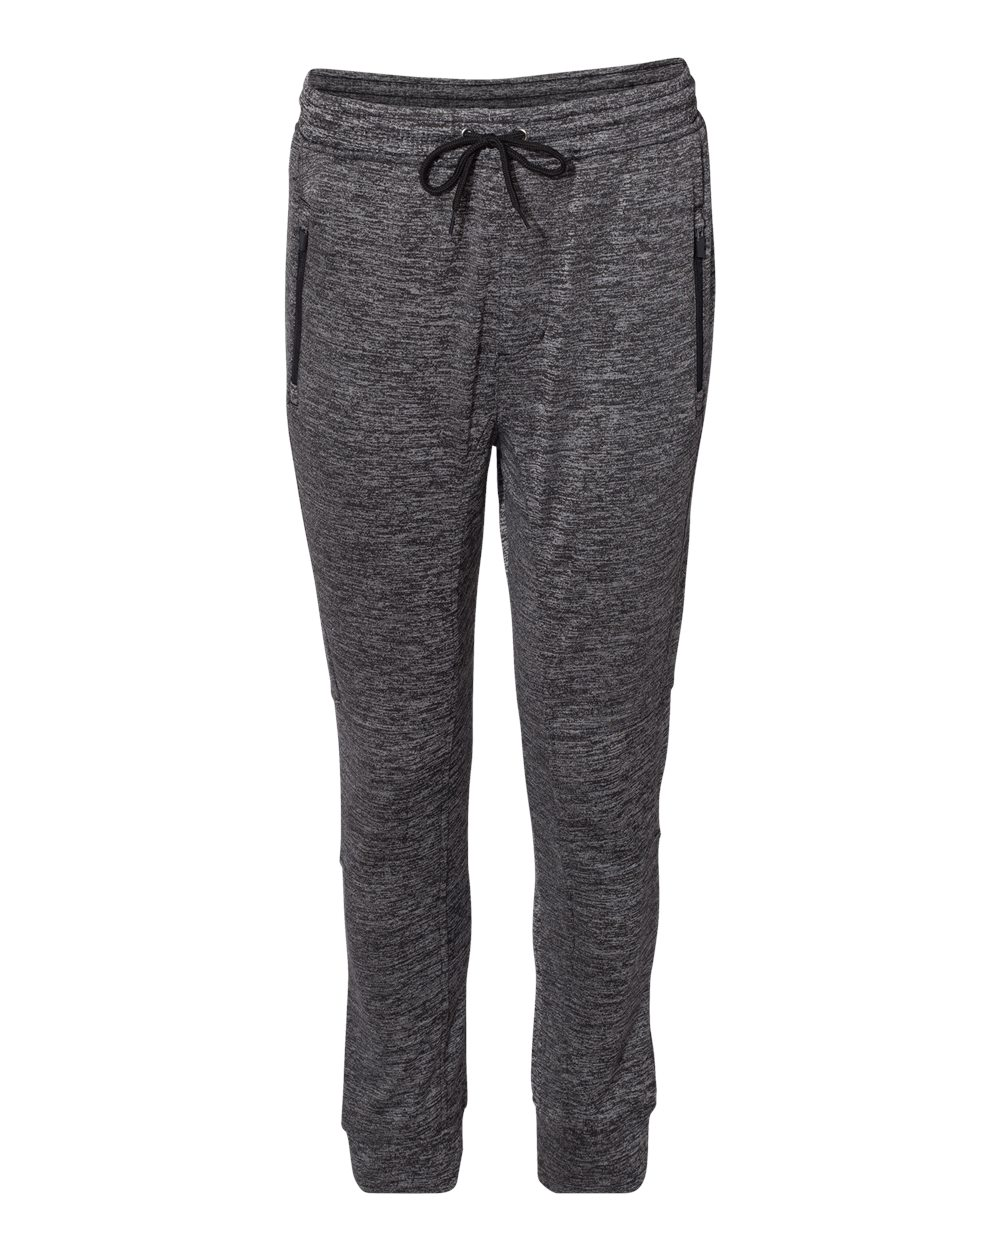 Burnside-Mens-Heather-Performance-Joggers-Pants-8801-up-to-3XL thumbnail 9